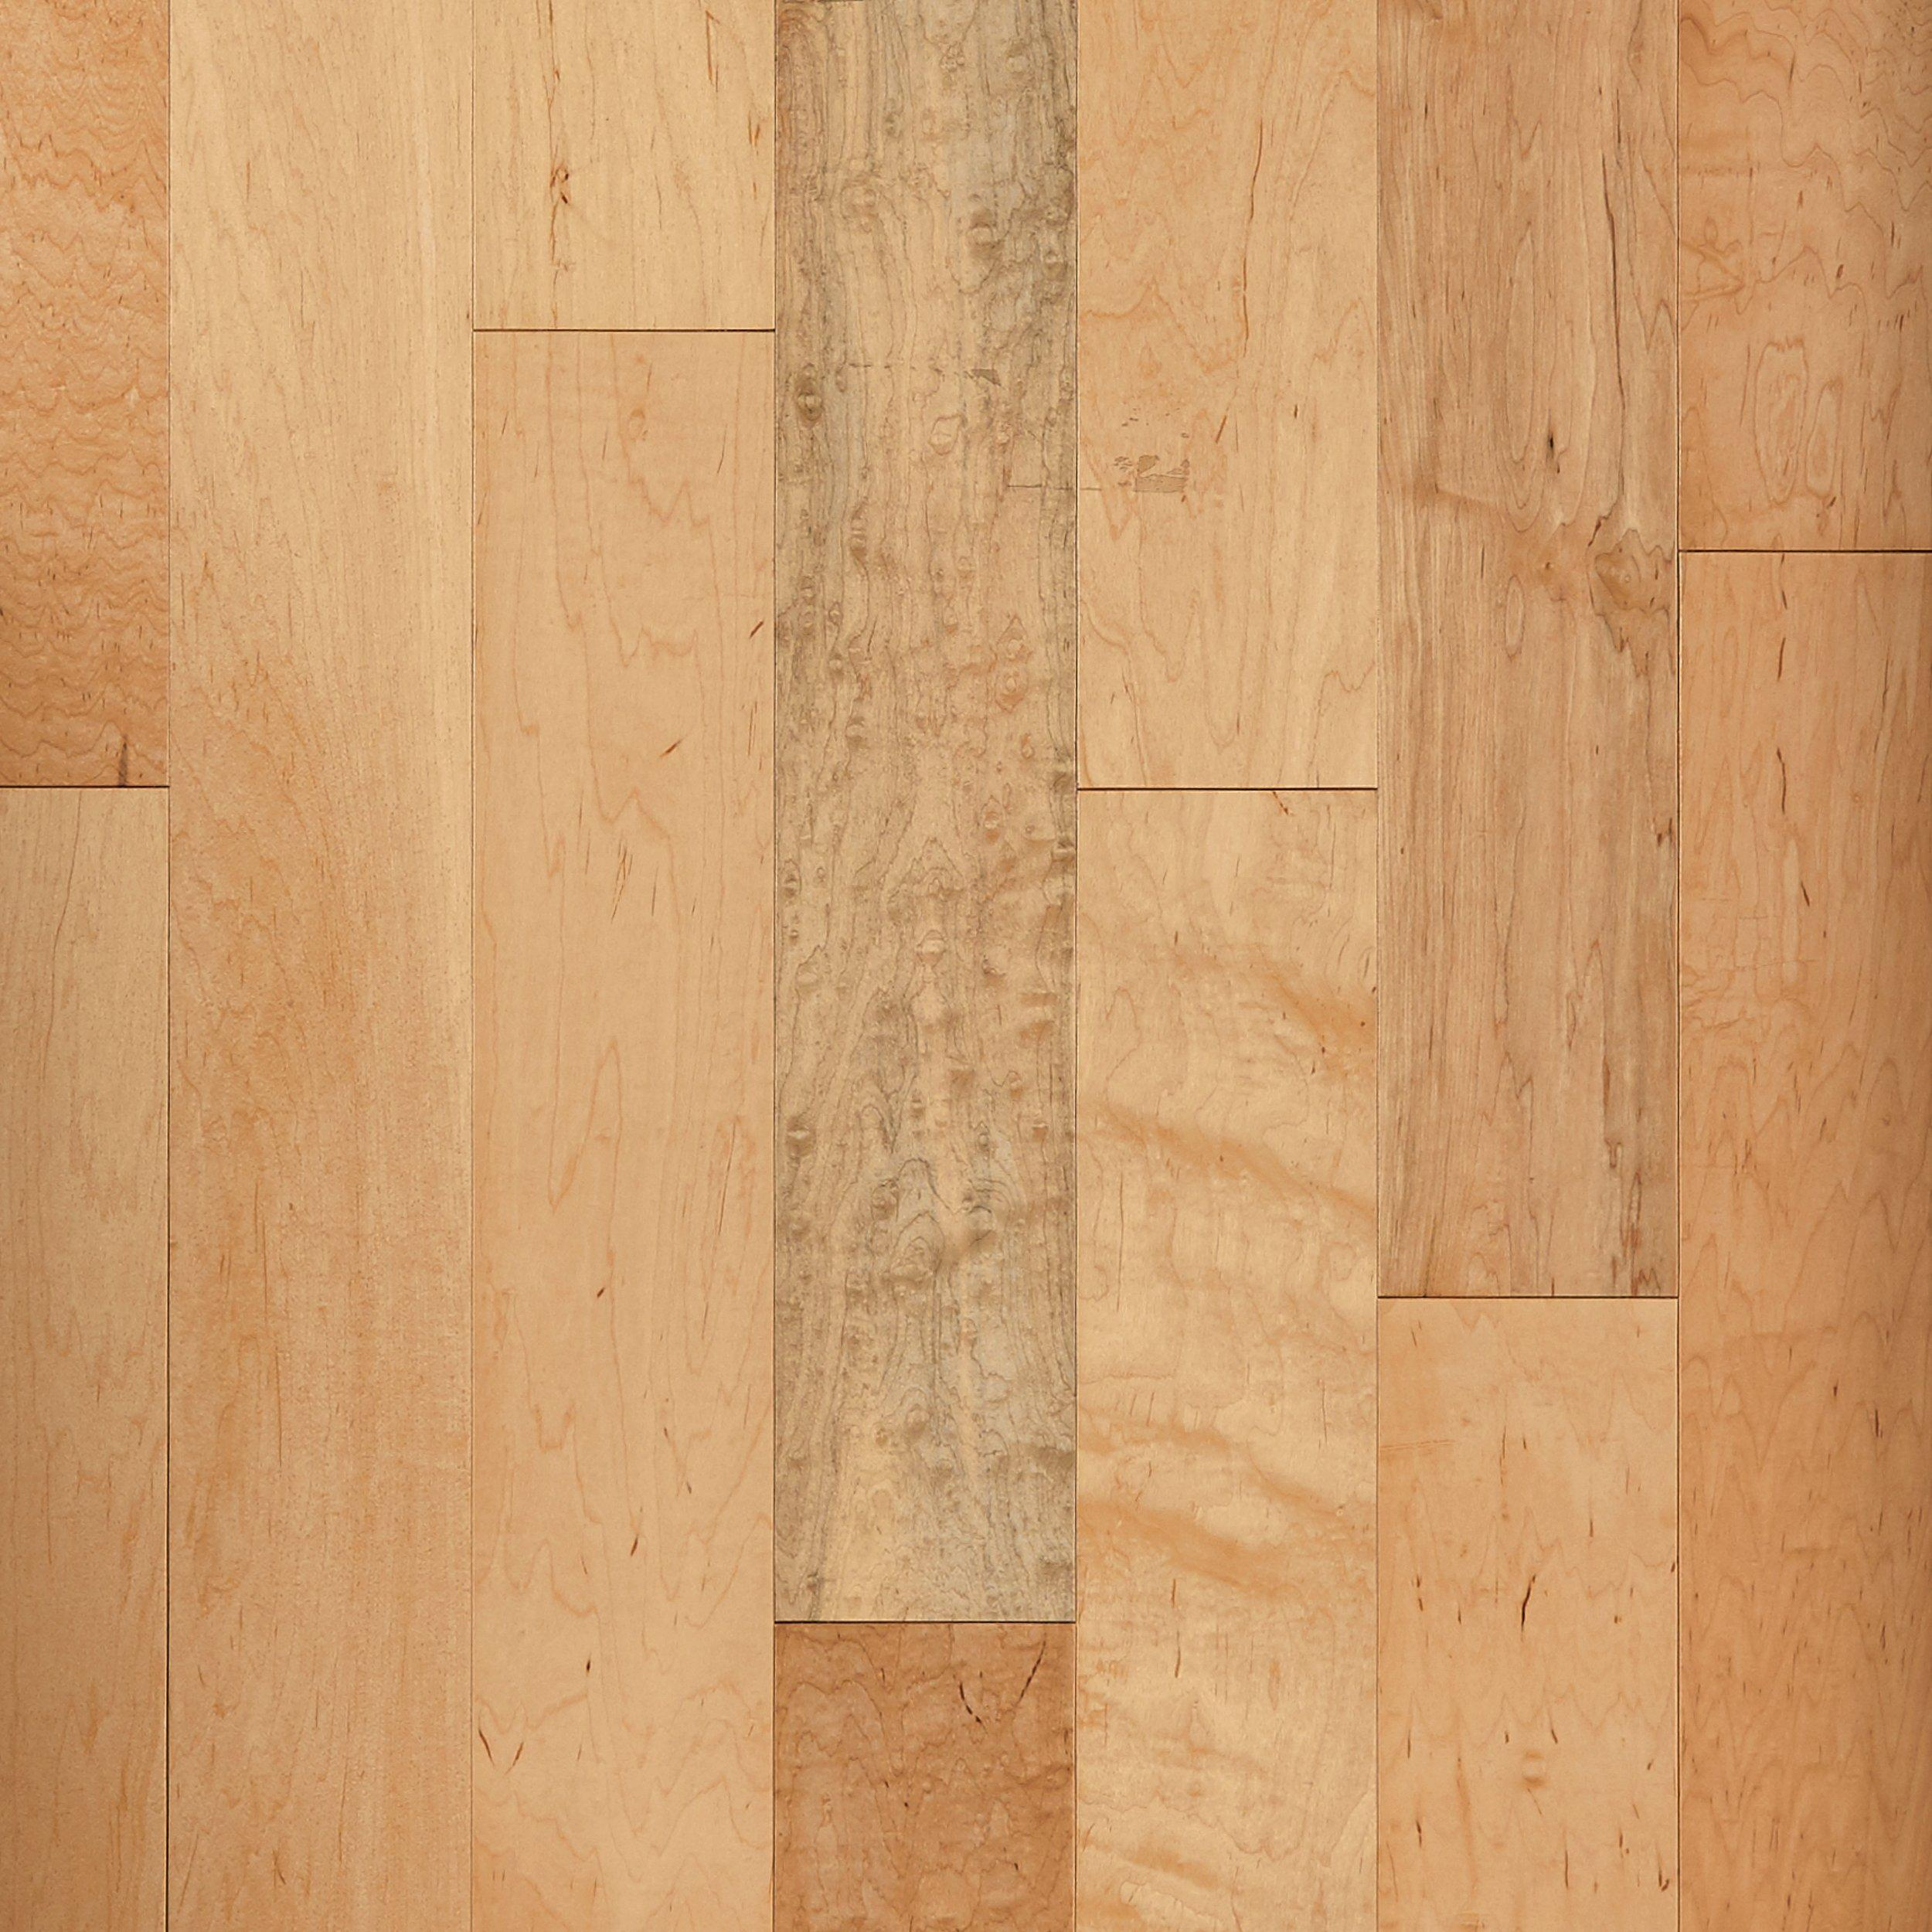 Maple Wood Flooring Floor Decor